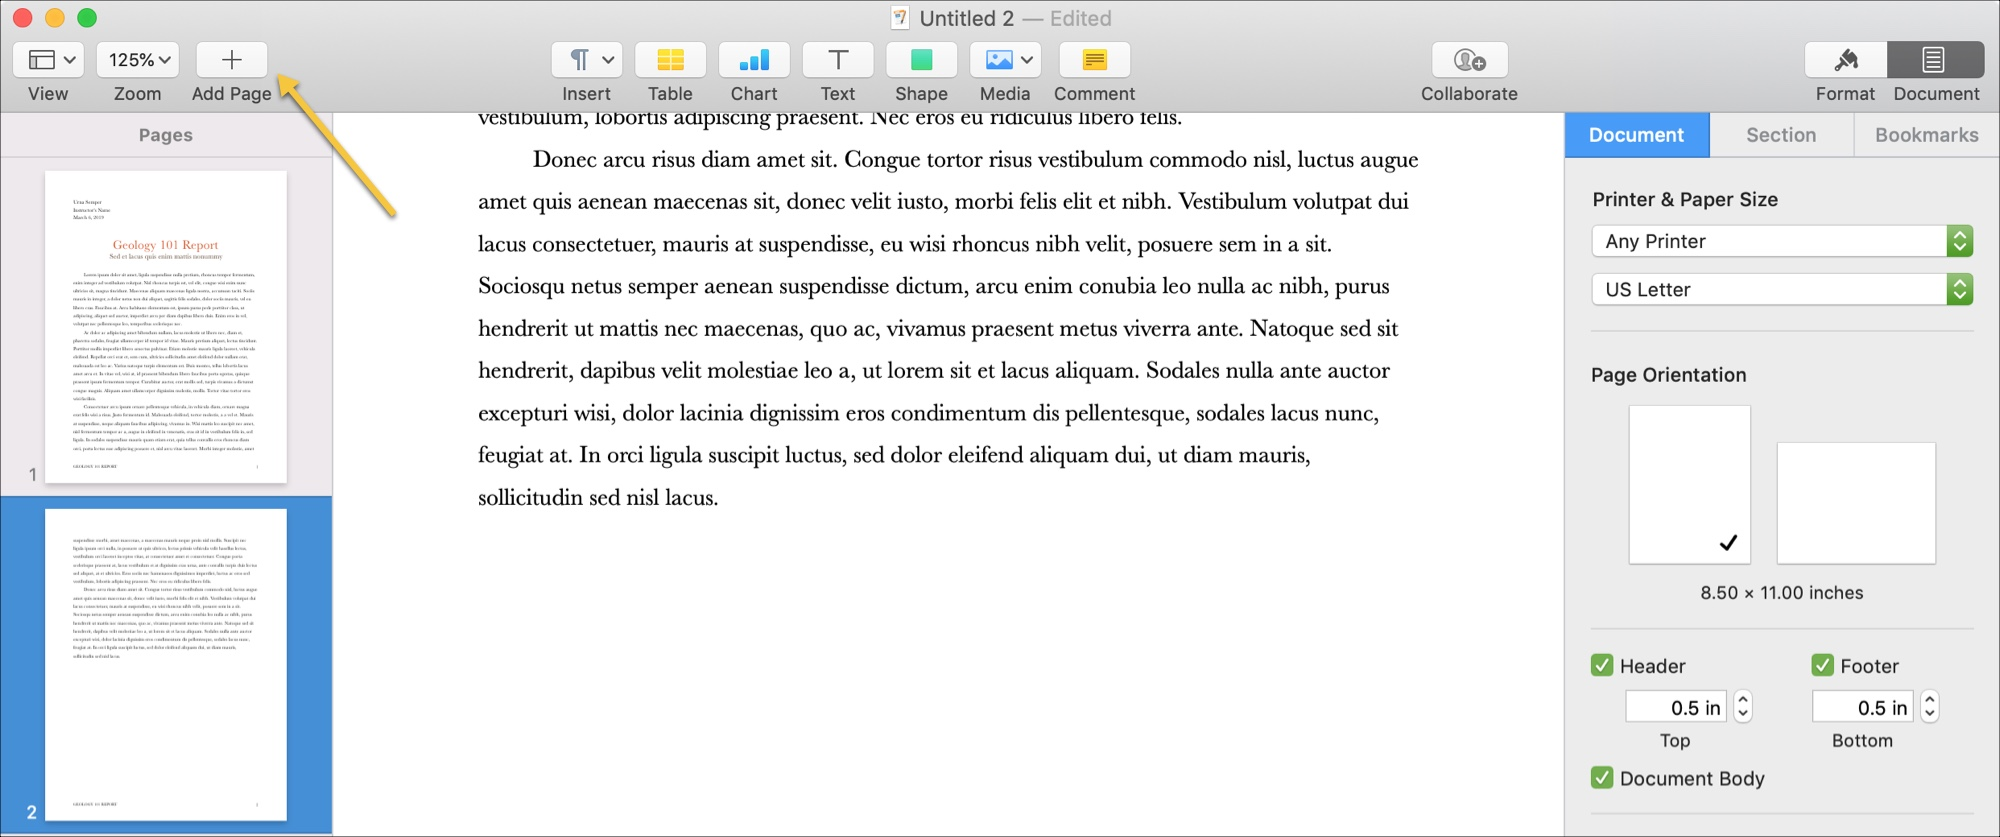 Add Pages Word Processing doc Mac